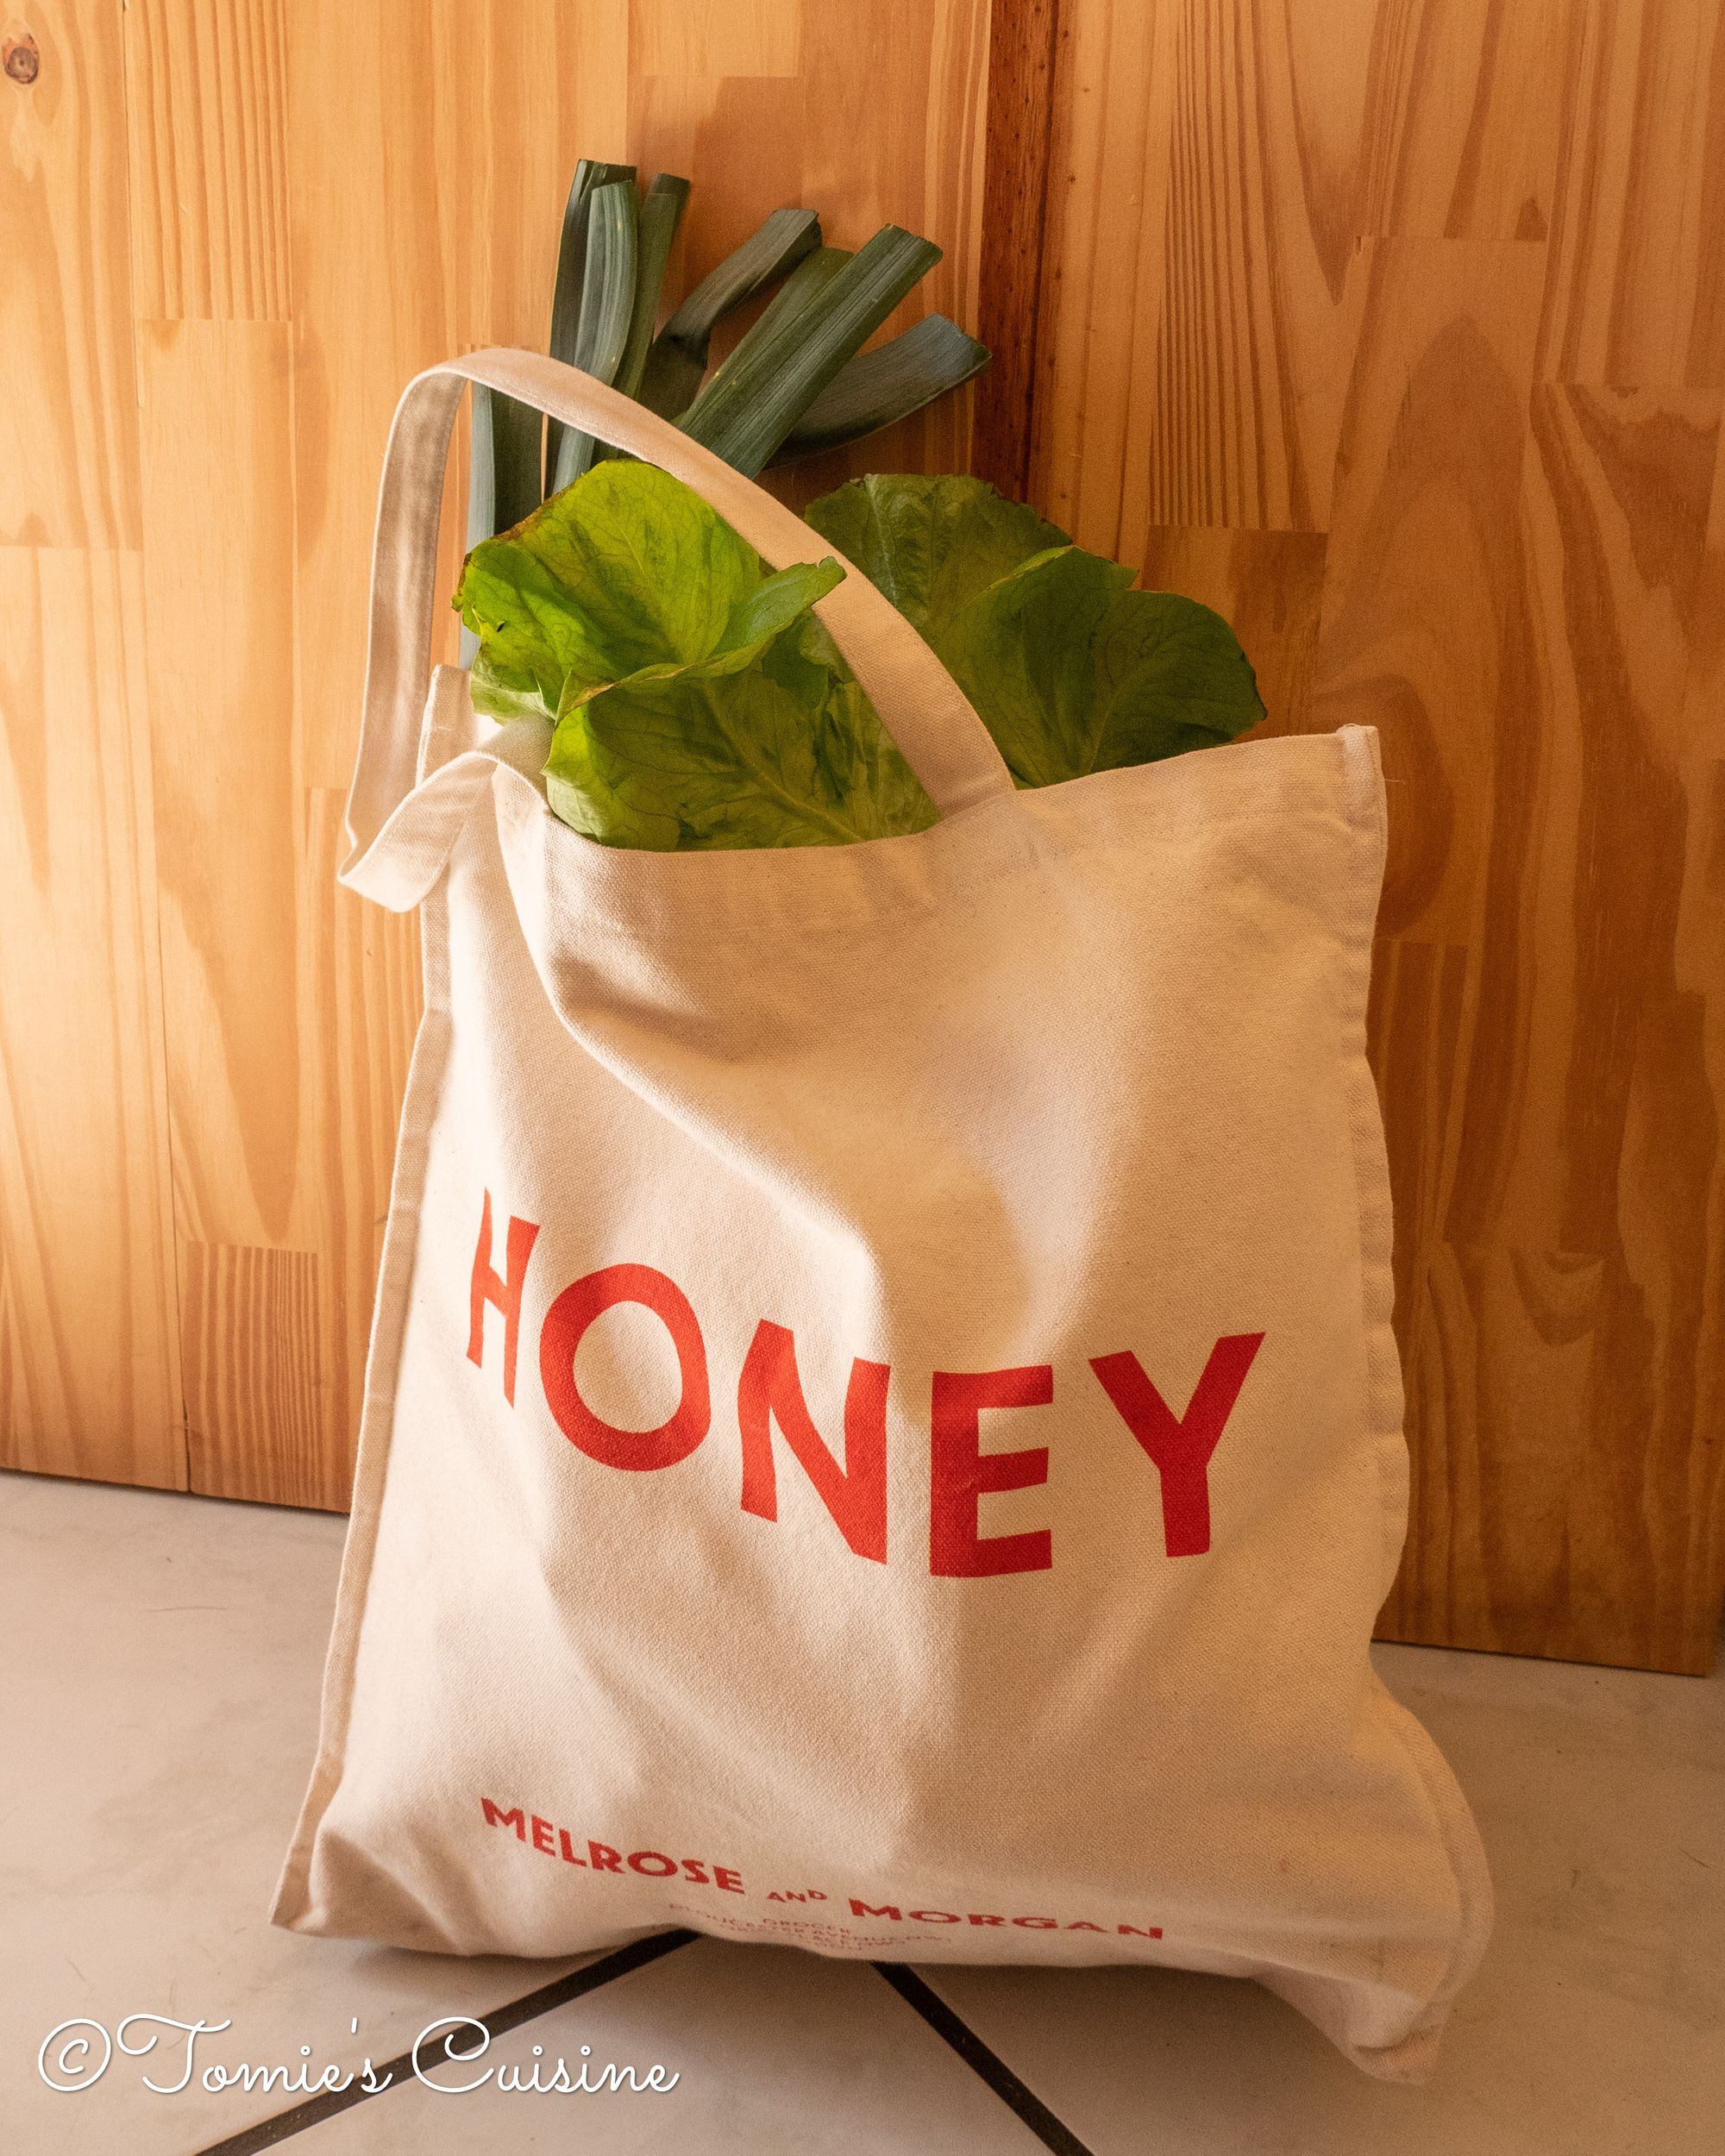 Here's my primary shopping bag (more than 3 years of use)